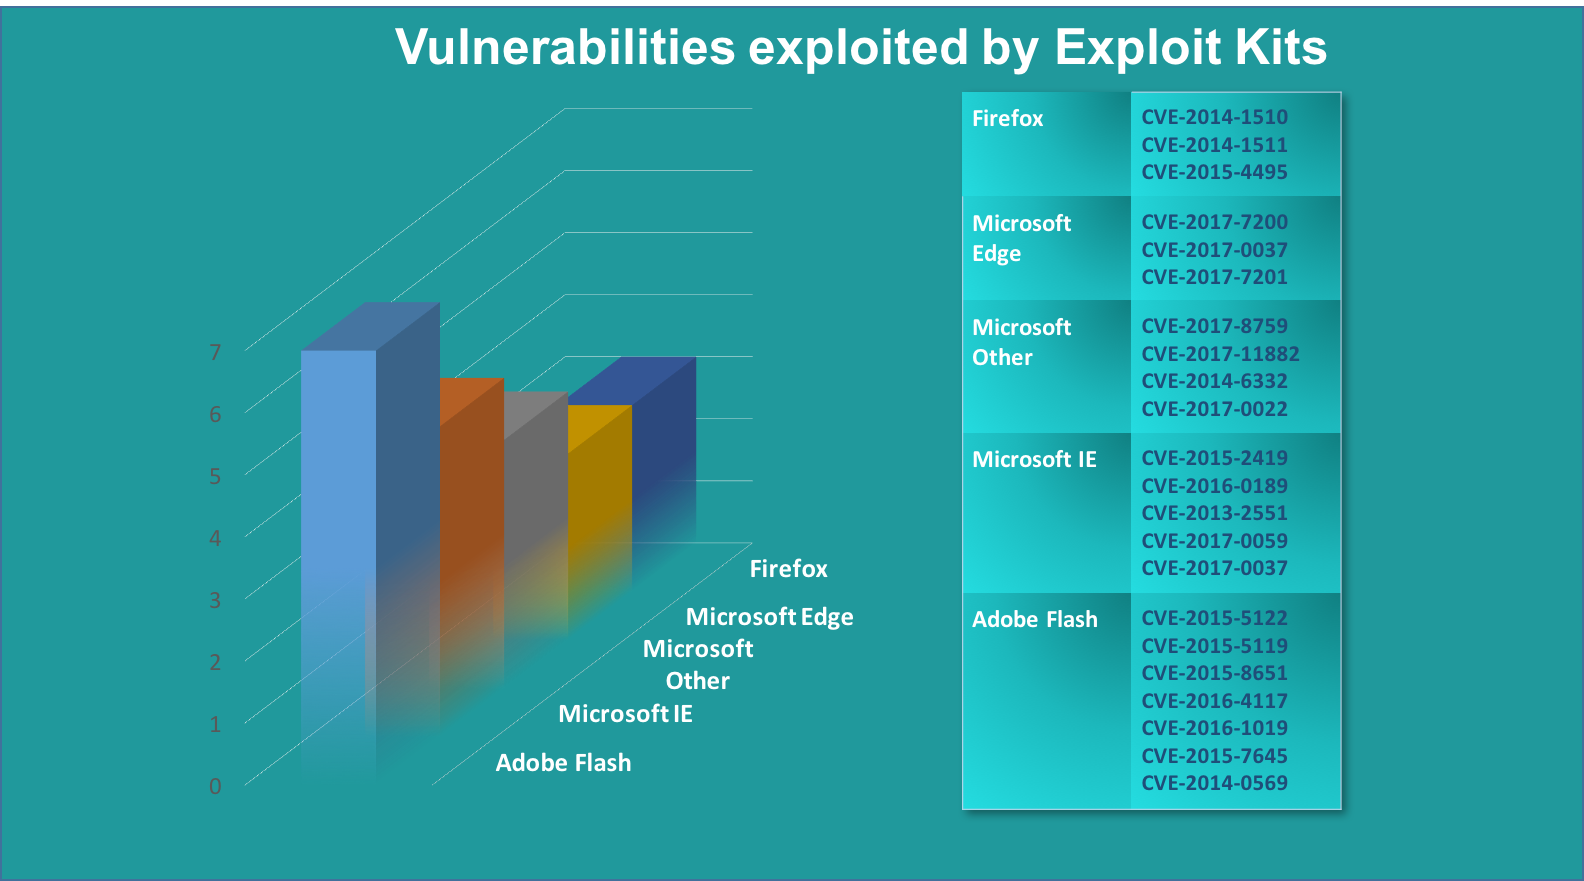 Vulns exploited by Exploit Kits